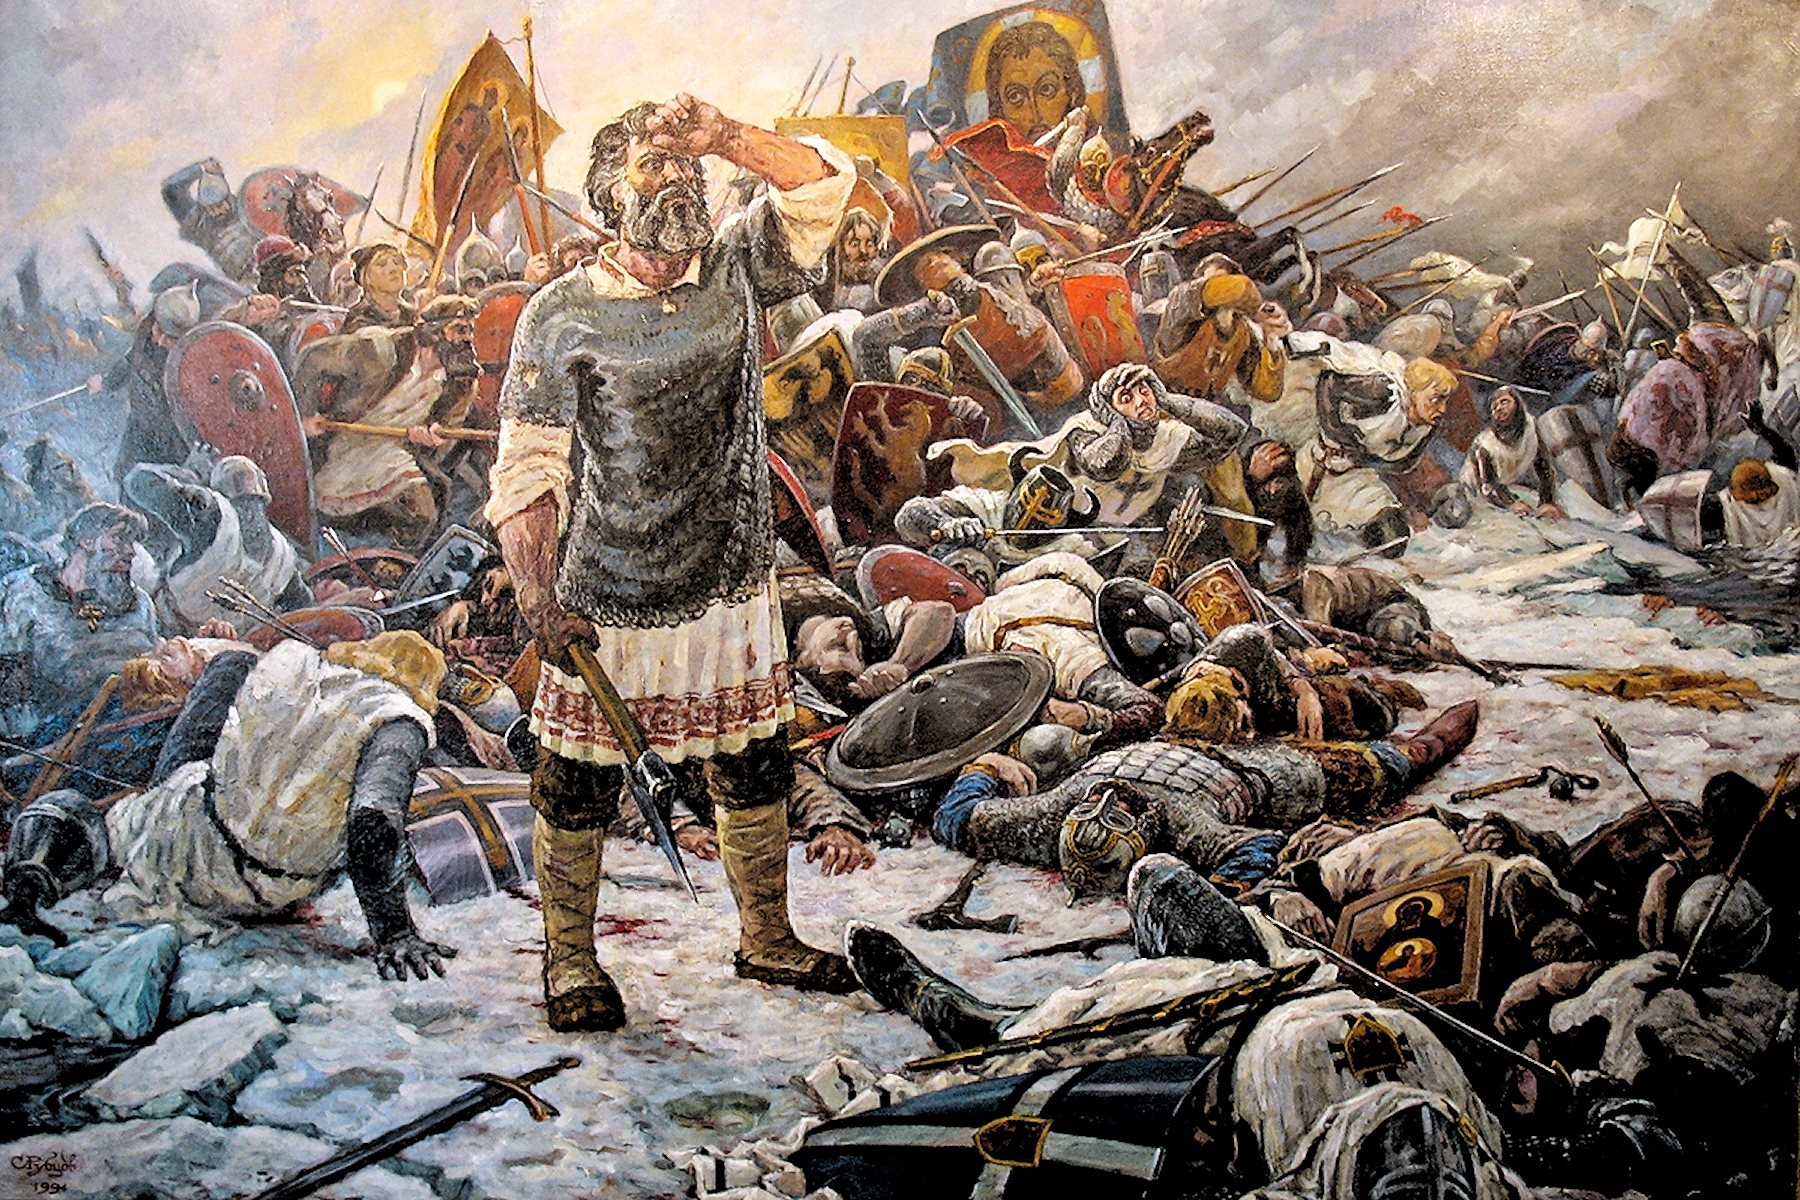 00 Sergei Rubtsov. How Long, O Lord (The Battle on the Ice). 1994